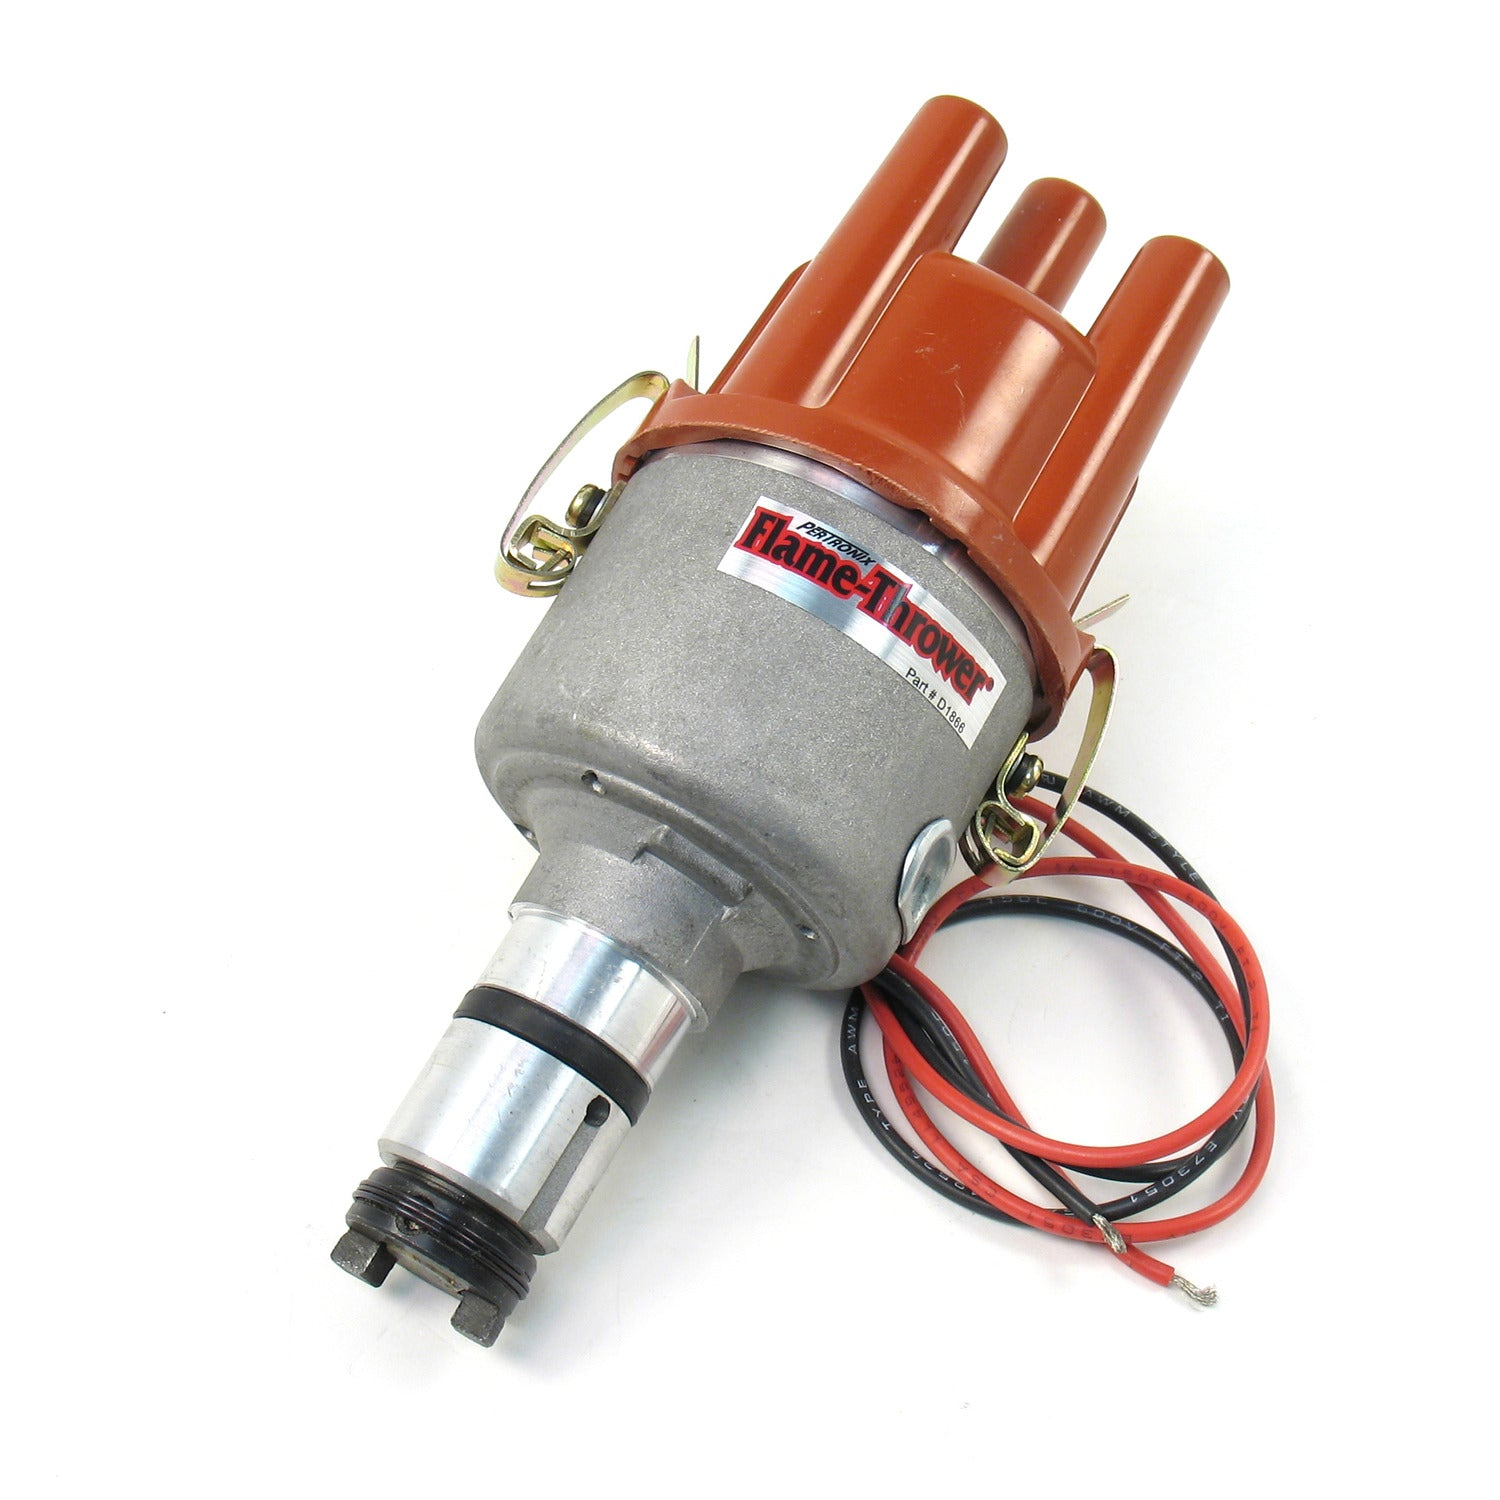 PerTronix D186604 Flame-Thrower Electronic Distributor Cast VW Type 1 Engine Plug and Play with Ignitor Non Vacuum